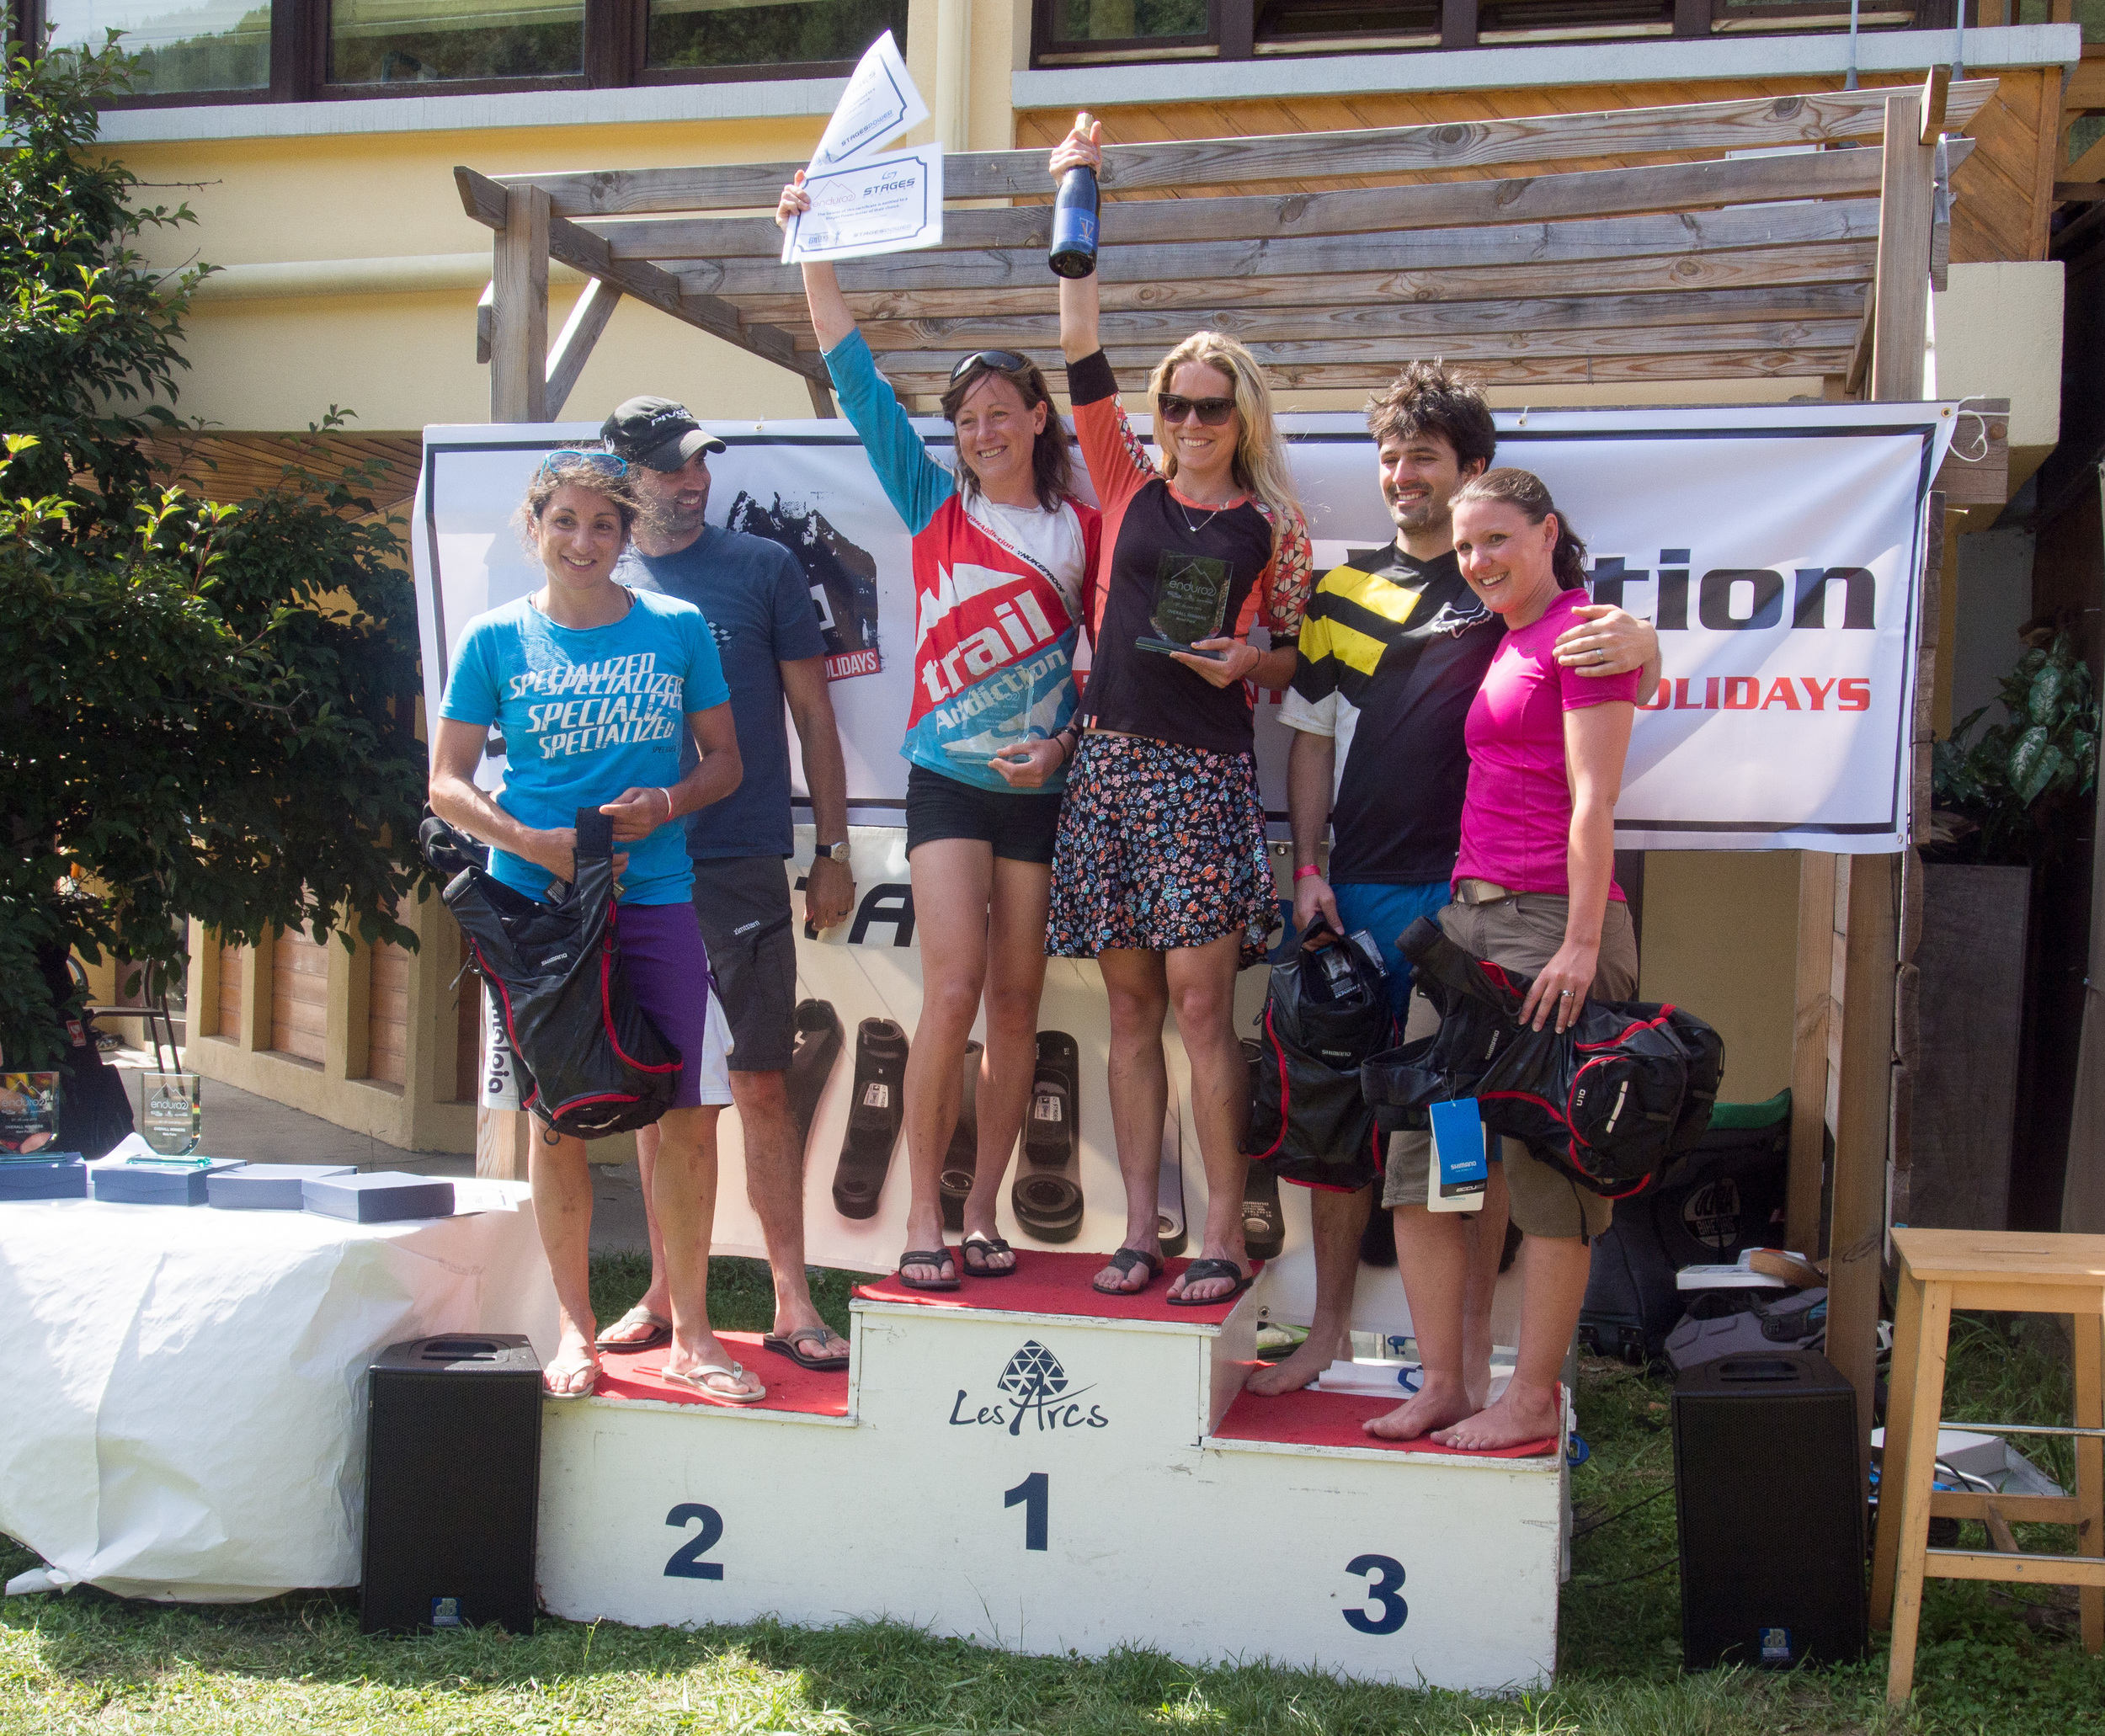 Mixed pairs podium: 1st -The Full Nelson (Meg Bichard/Raewyn Morrison), 2nd - Pivot Specialized Mixed Enduro, 3rd - Team Howard.